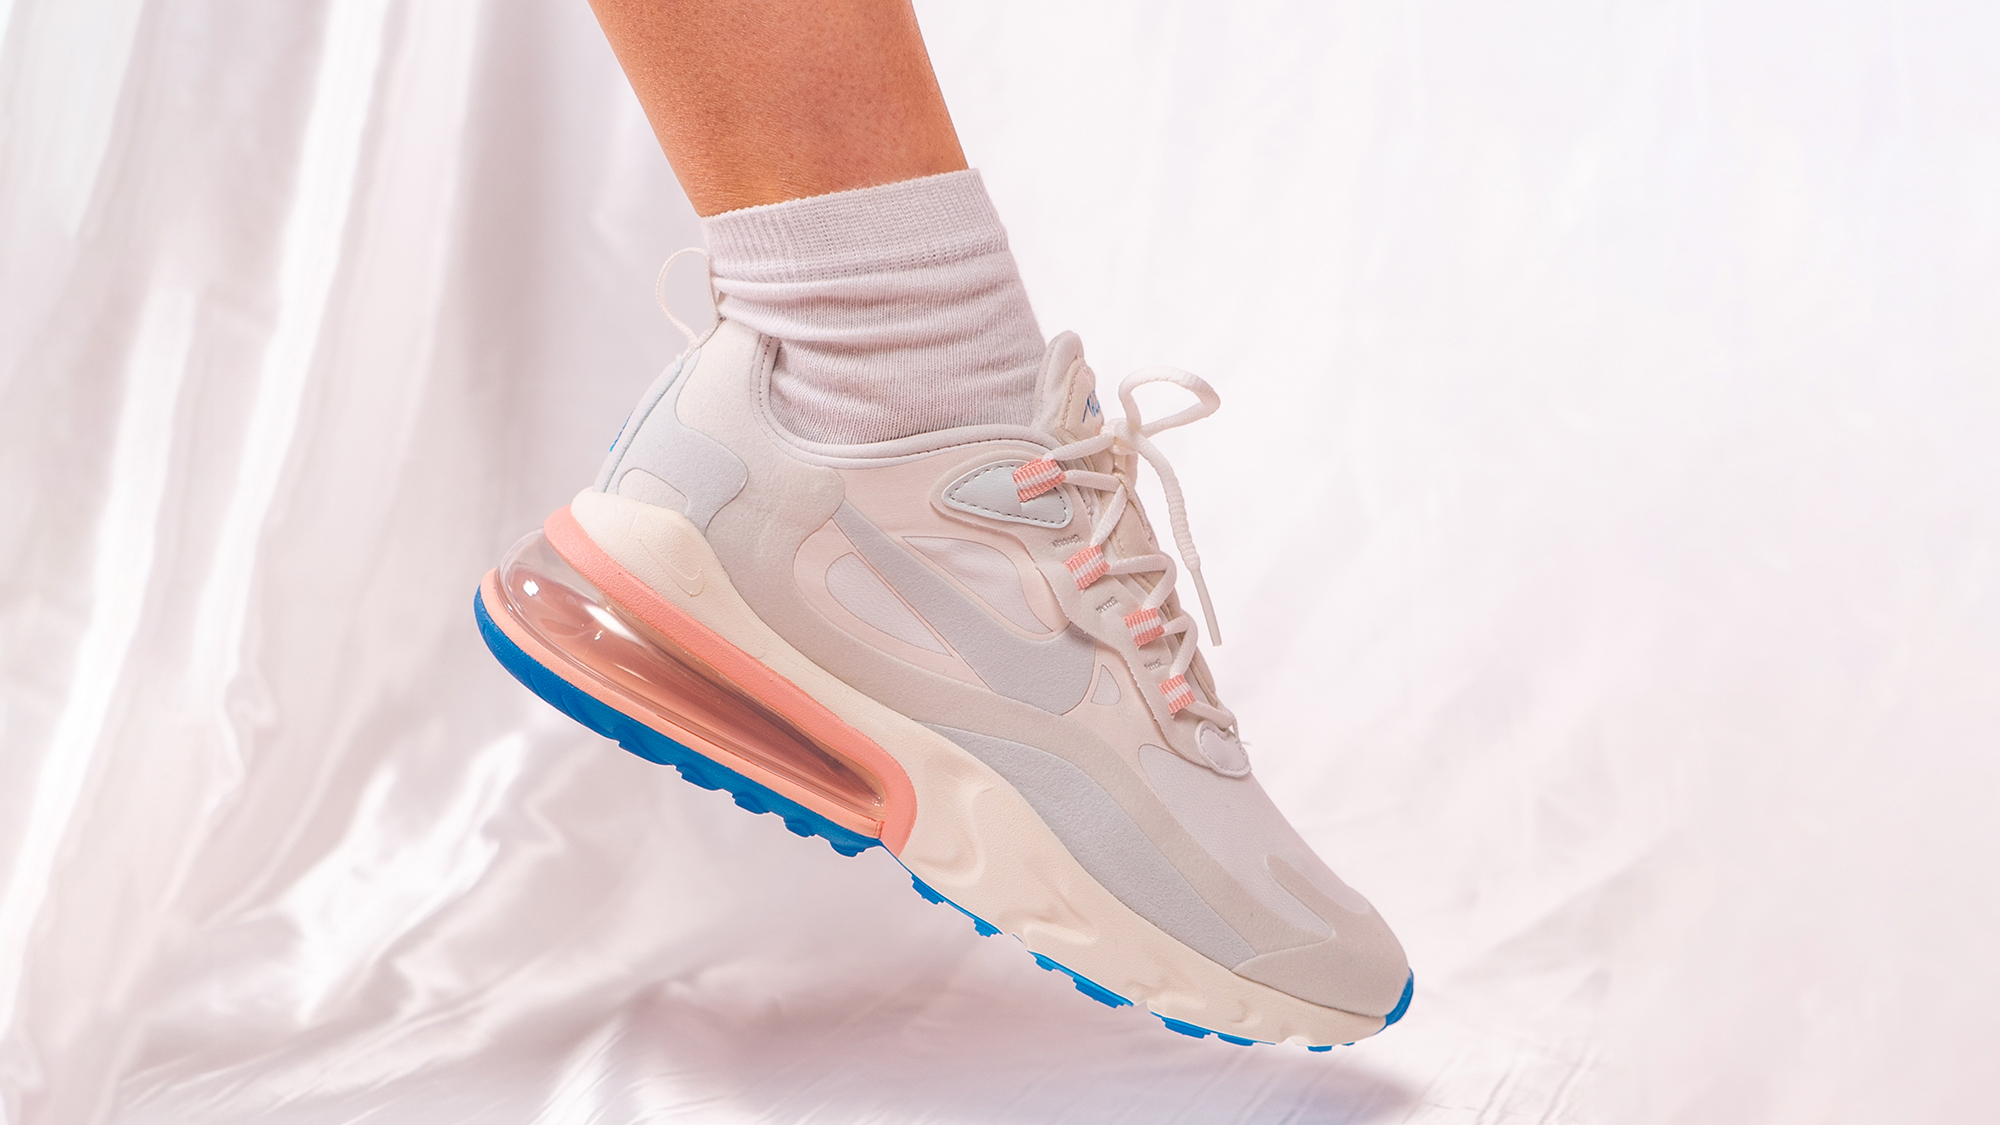 new style 7d940 d387b An On Foot Look At The Nike Air Max 270 React 'Coral ...